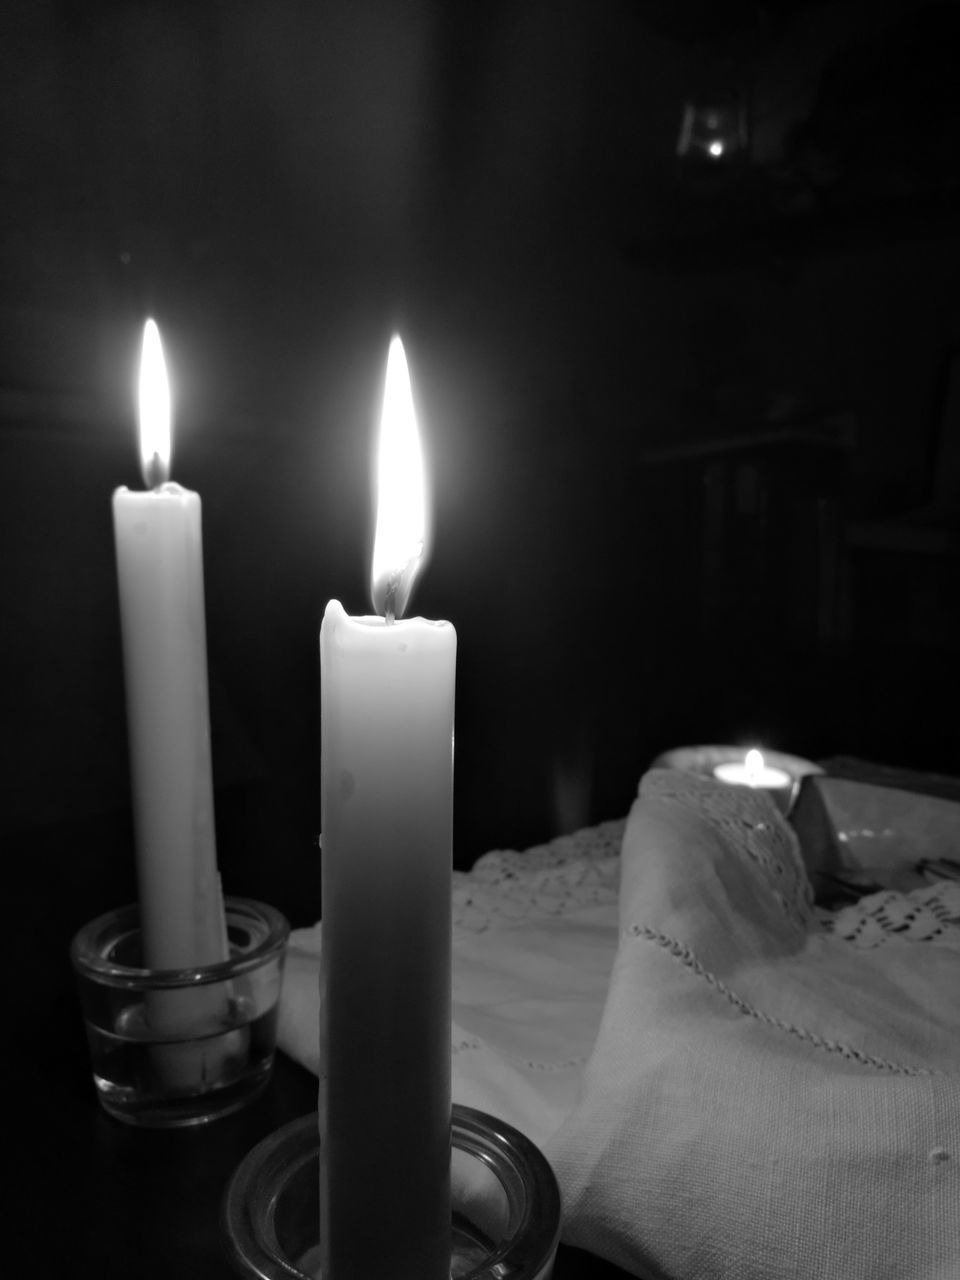 candle, flame, burning, illuminated, glowing, heat - temperature, lighting equipment, table, indoors, close-up, no people, night